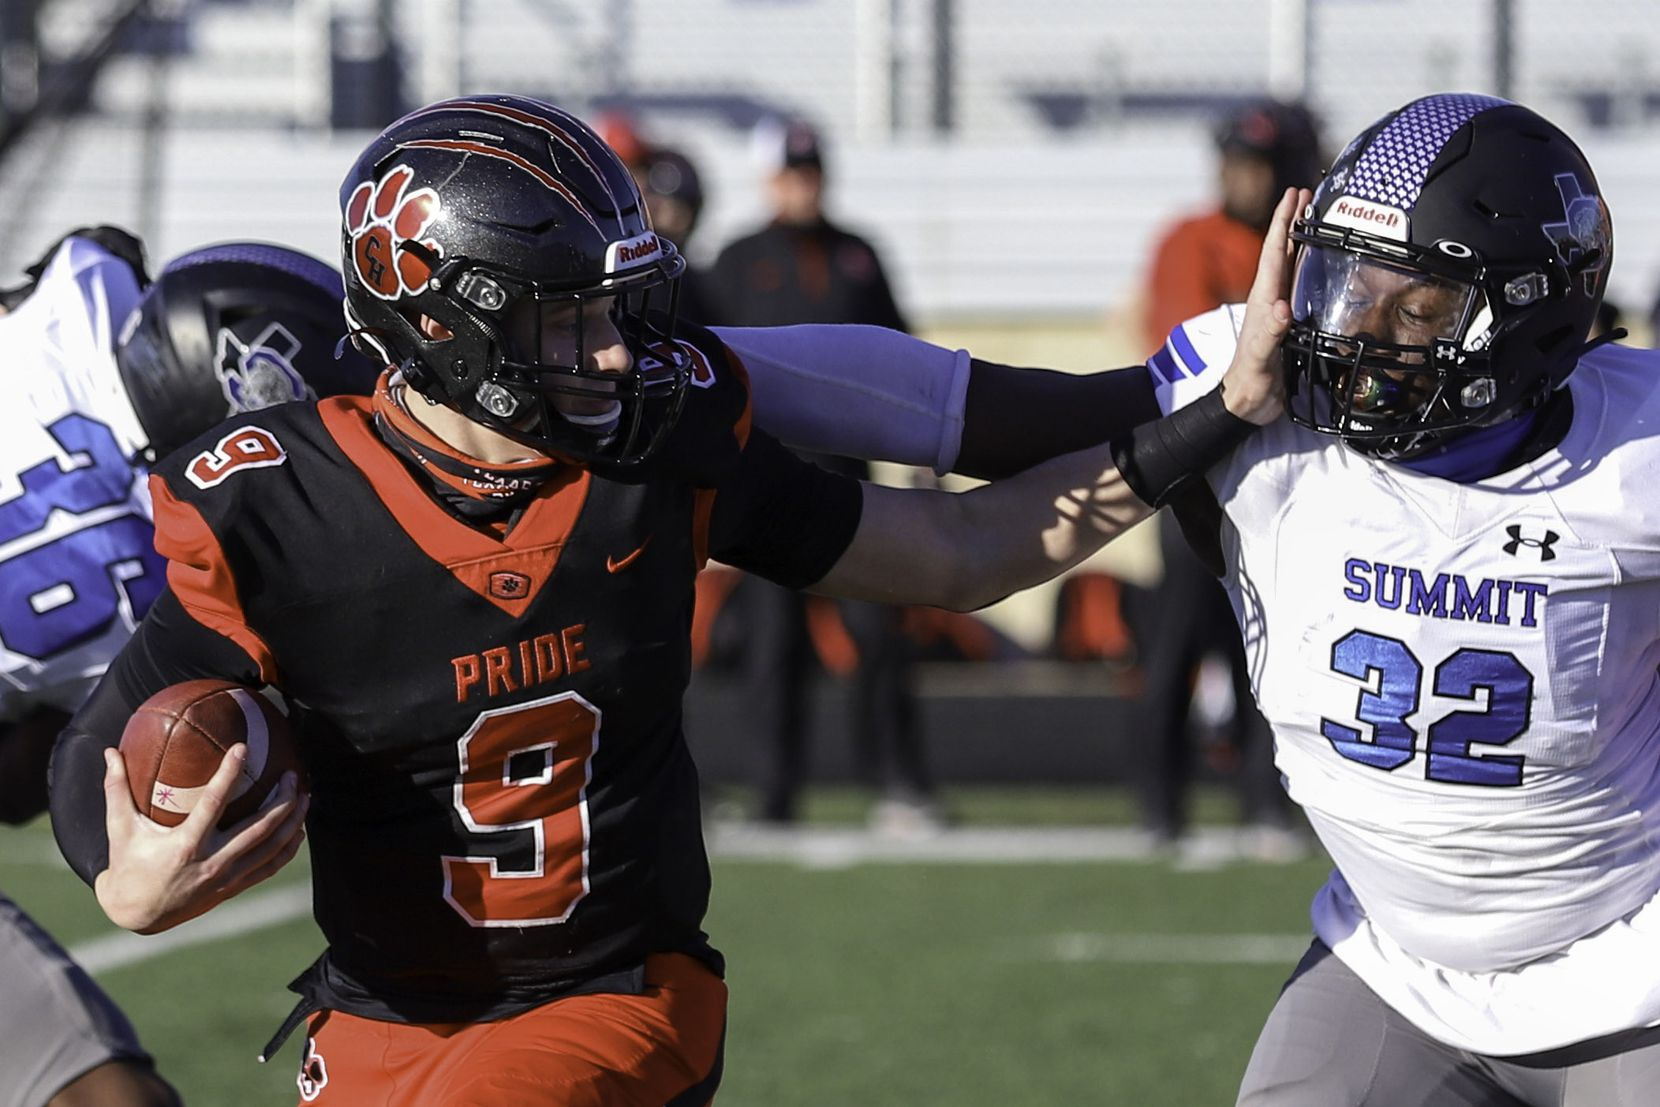 Colleyville Heritage quarterback Brenen Hawkins-Roth (9) gives a stiff-arm to Mansfield Summit's Kalon Duvall (32) during the first half at Bearcat Stadium in Aledo, Texas, Saturday, December 26, 2020. (Elias Valverde II / Special Contributor)